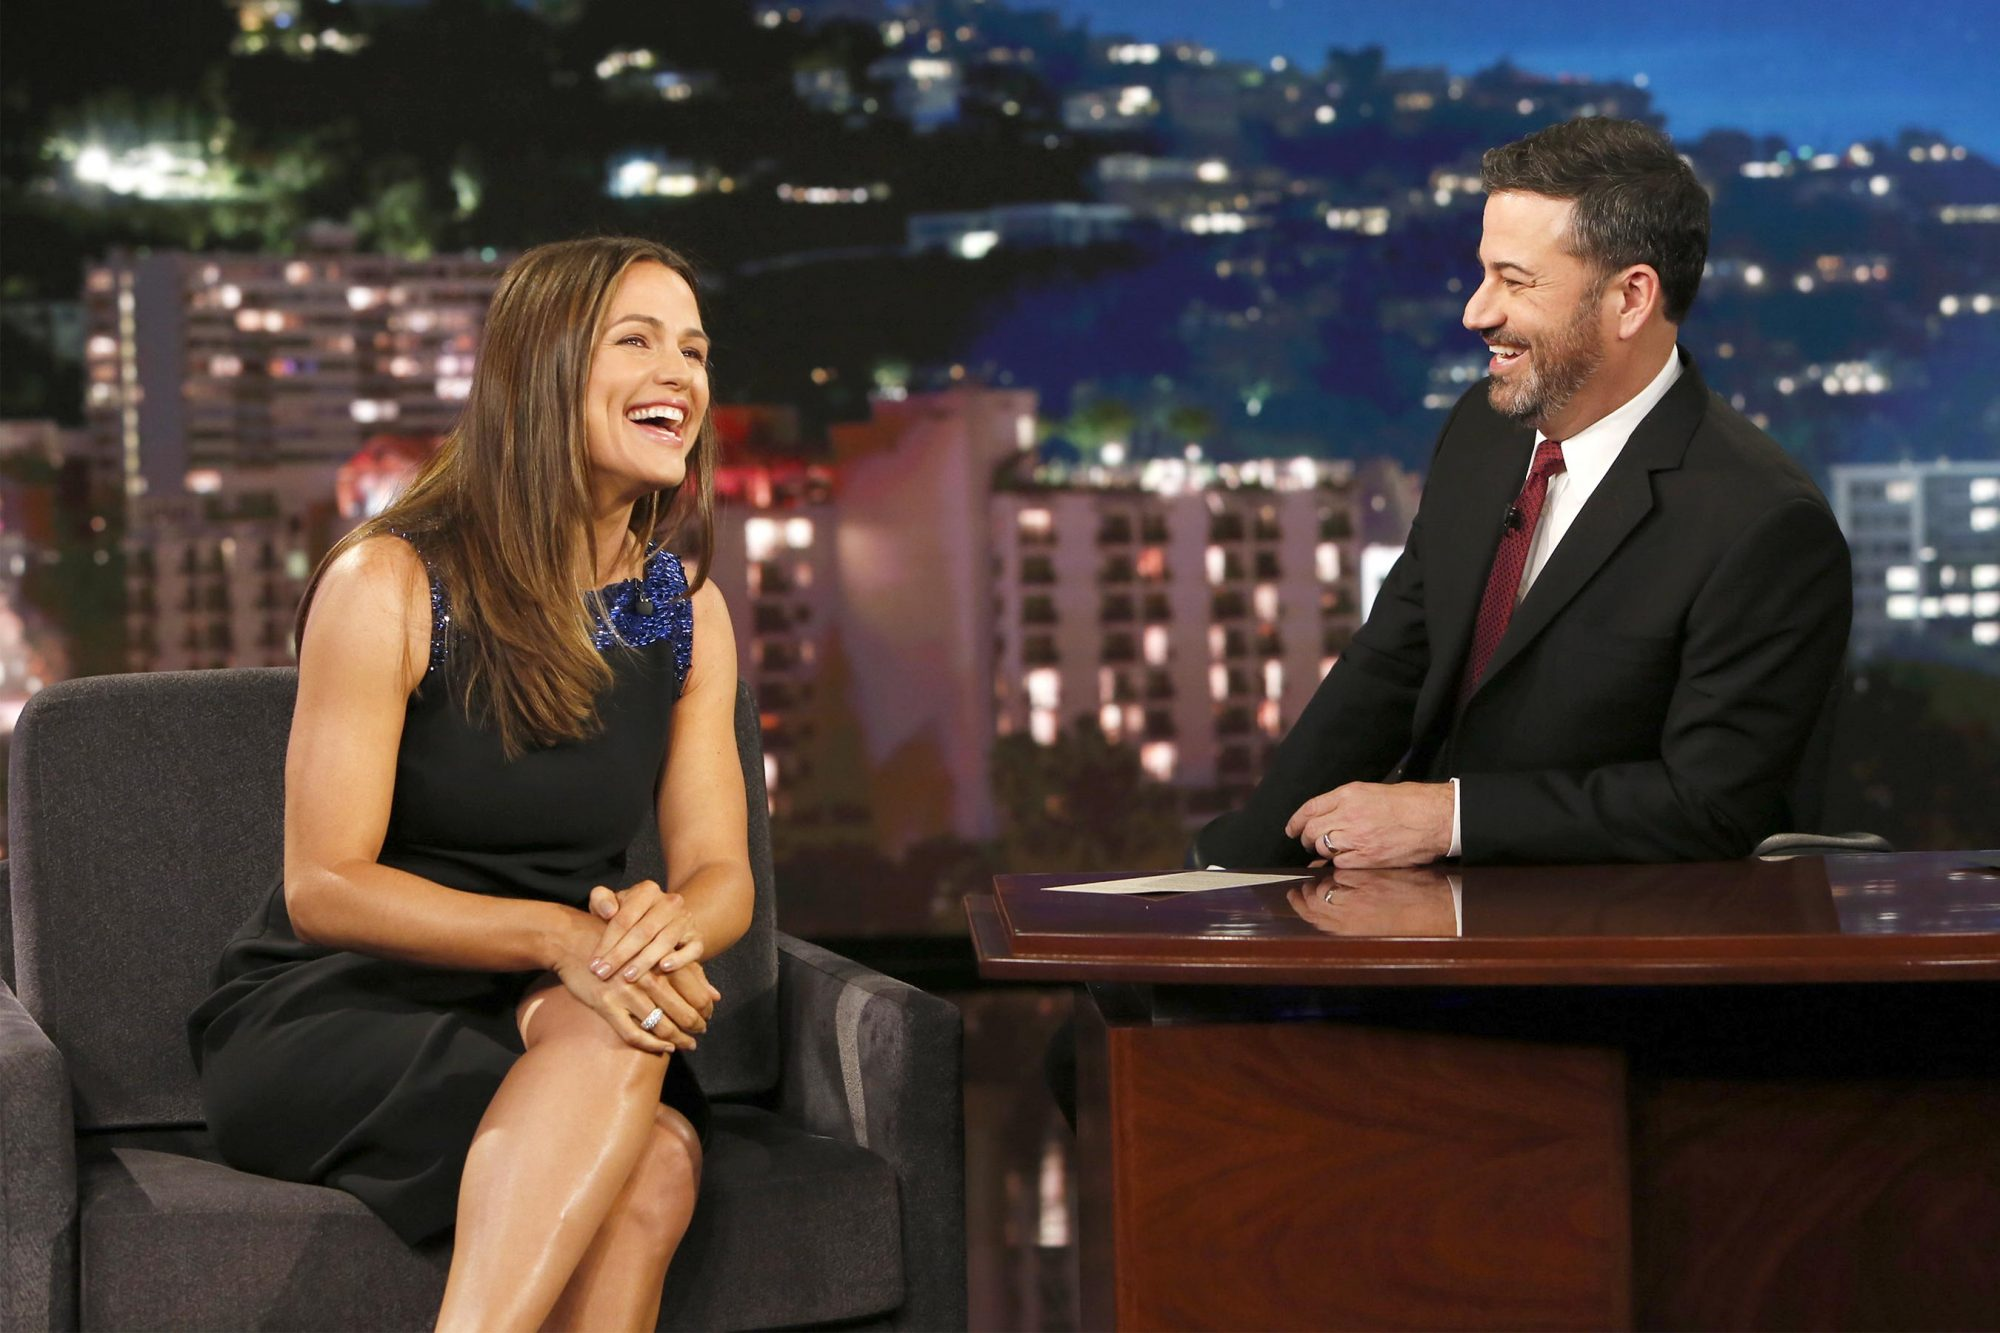 Jennifer Garner Wows Jimmy Kimmel with Her Most Famous Dessert Recipe 150525_5013